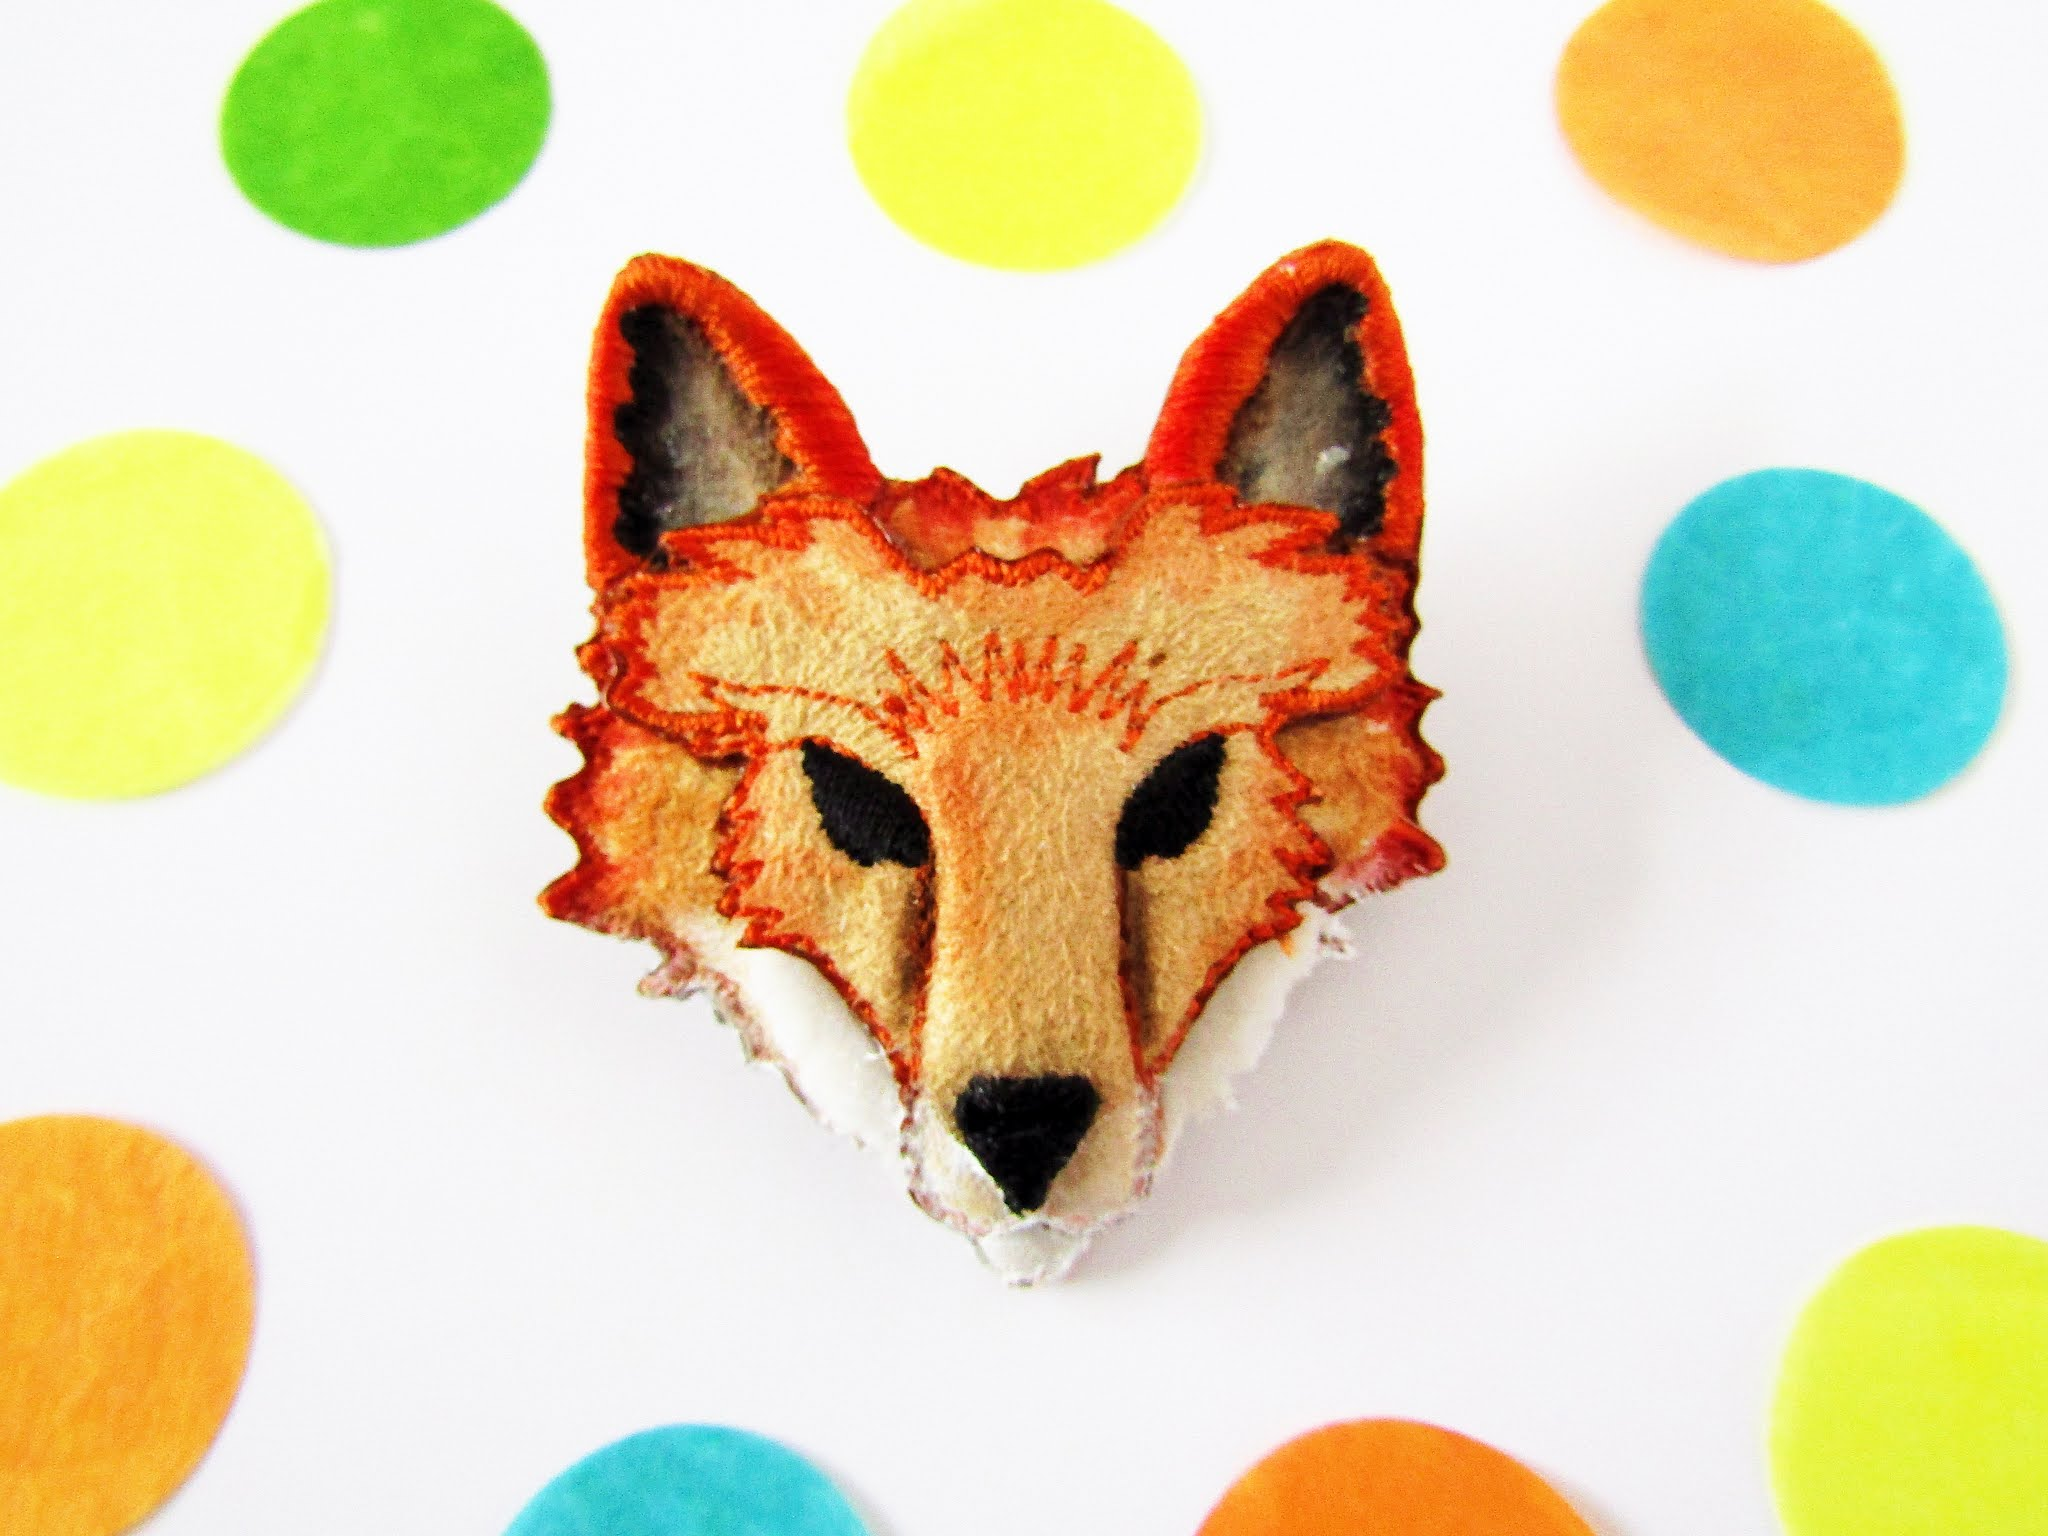 A photo of an embroidered red fox brooch.